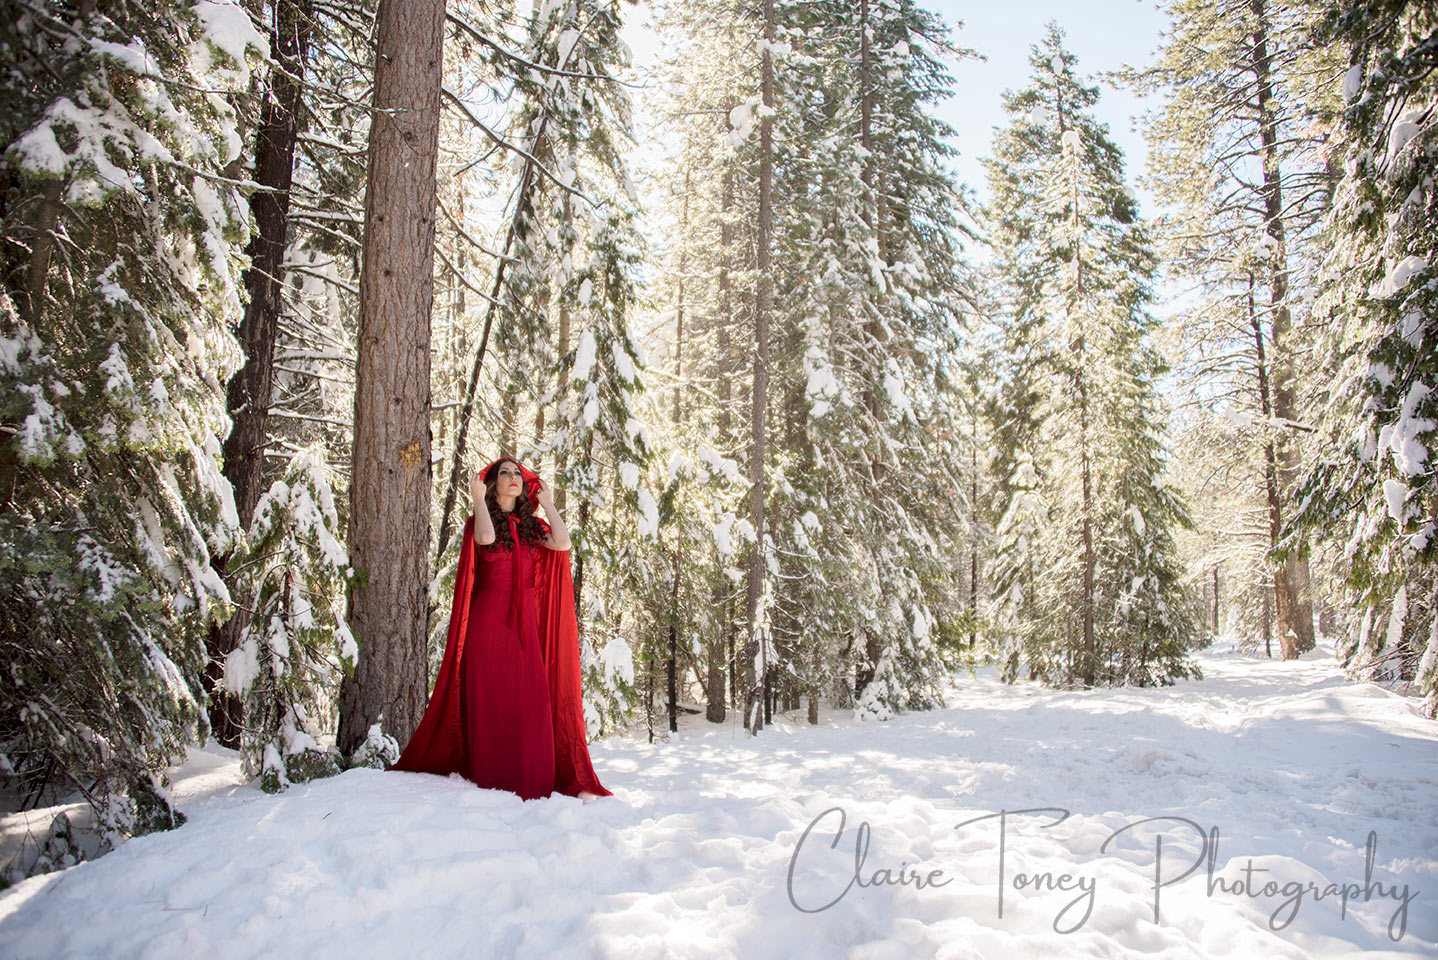 Woman wearing red cape standing in a snowy forest.